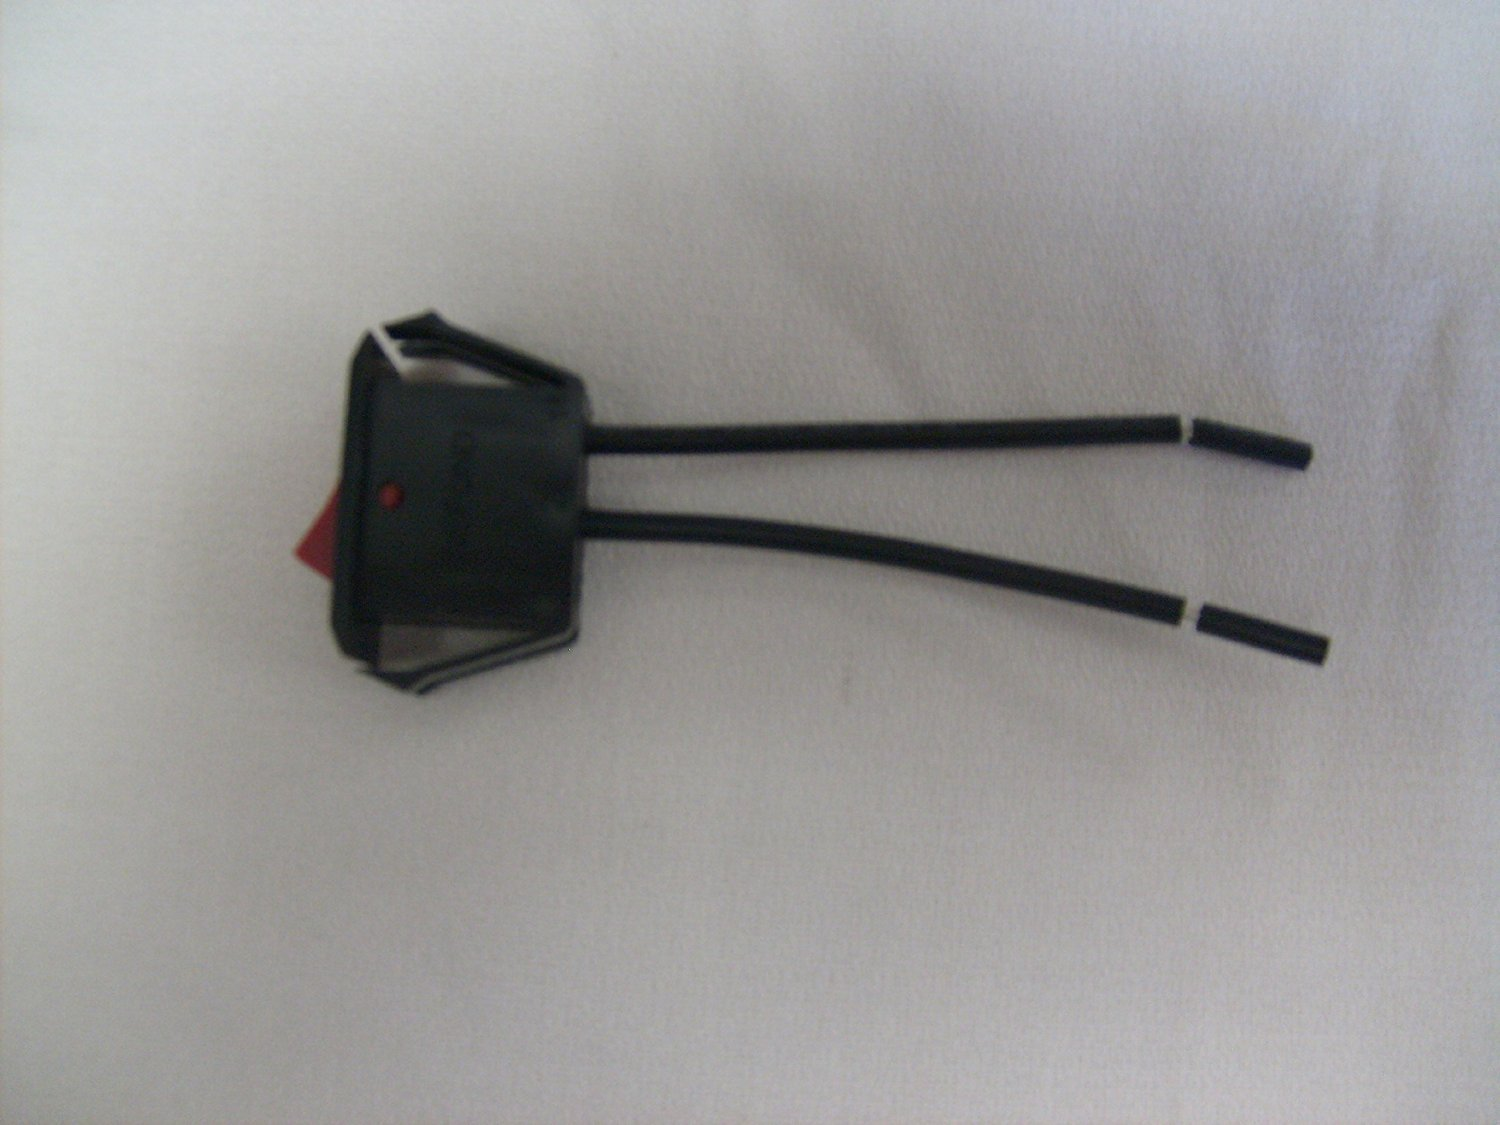 Hoover 28161075 Vacuum On/Off Switch Genuine Original Equipment Manufacturer (OEM) Part Black